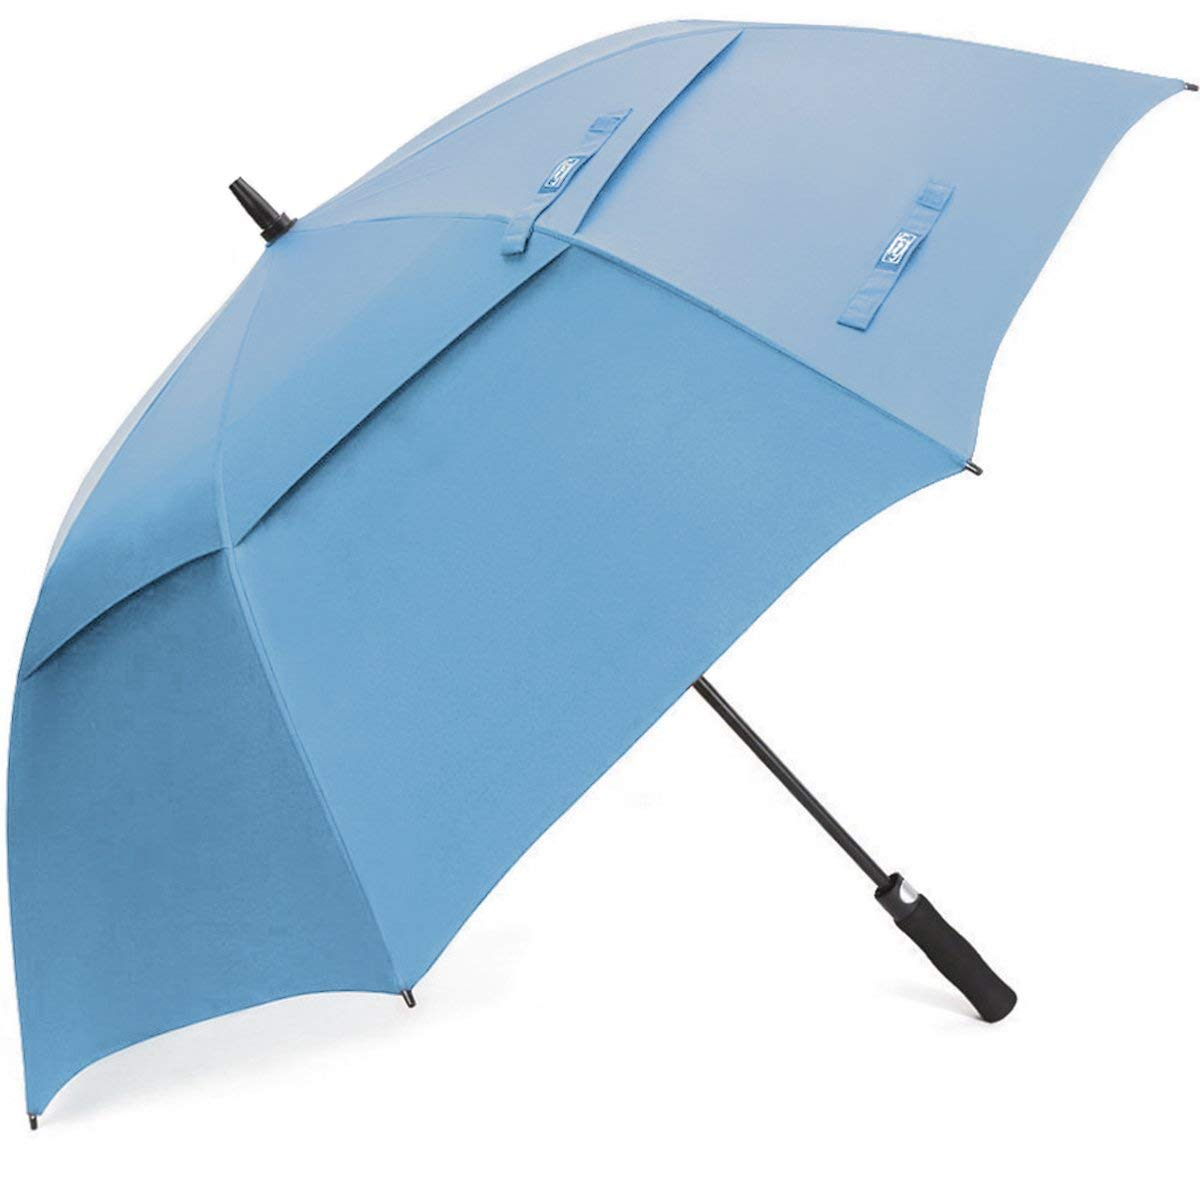 G4Free Golf Umbrella Extra Large 54 Inch Windproof Oversize Automatic Double Canopy Vented Waterproof Stick Umbrellas (Sky Blue) by G4Free